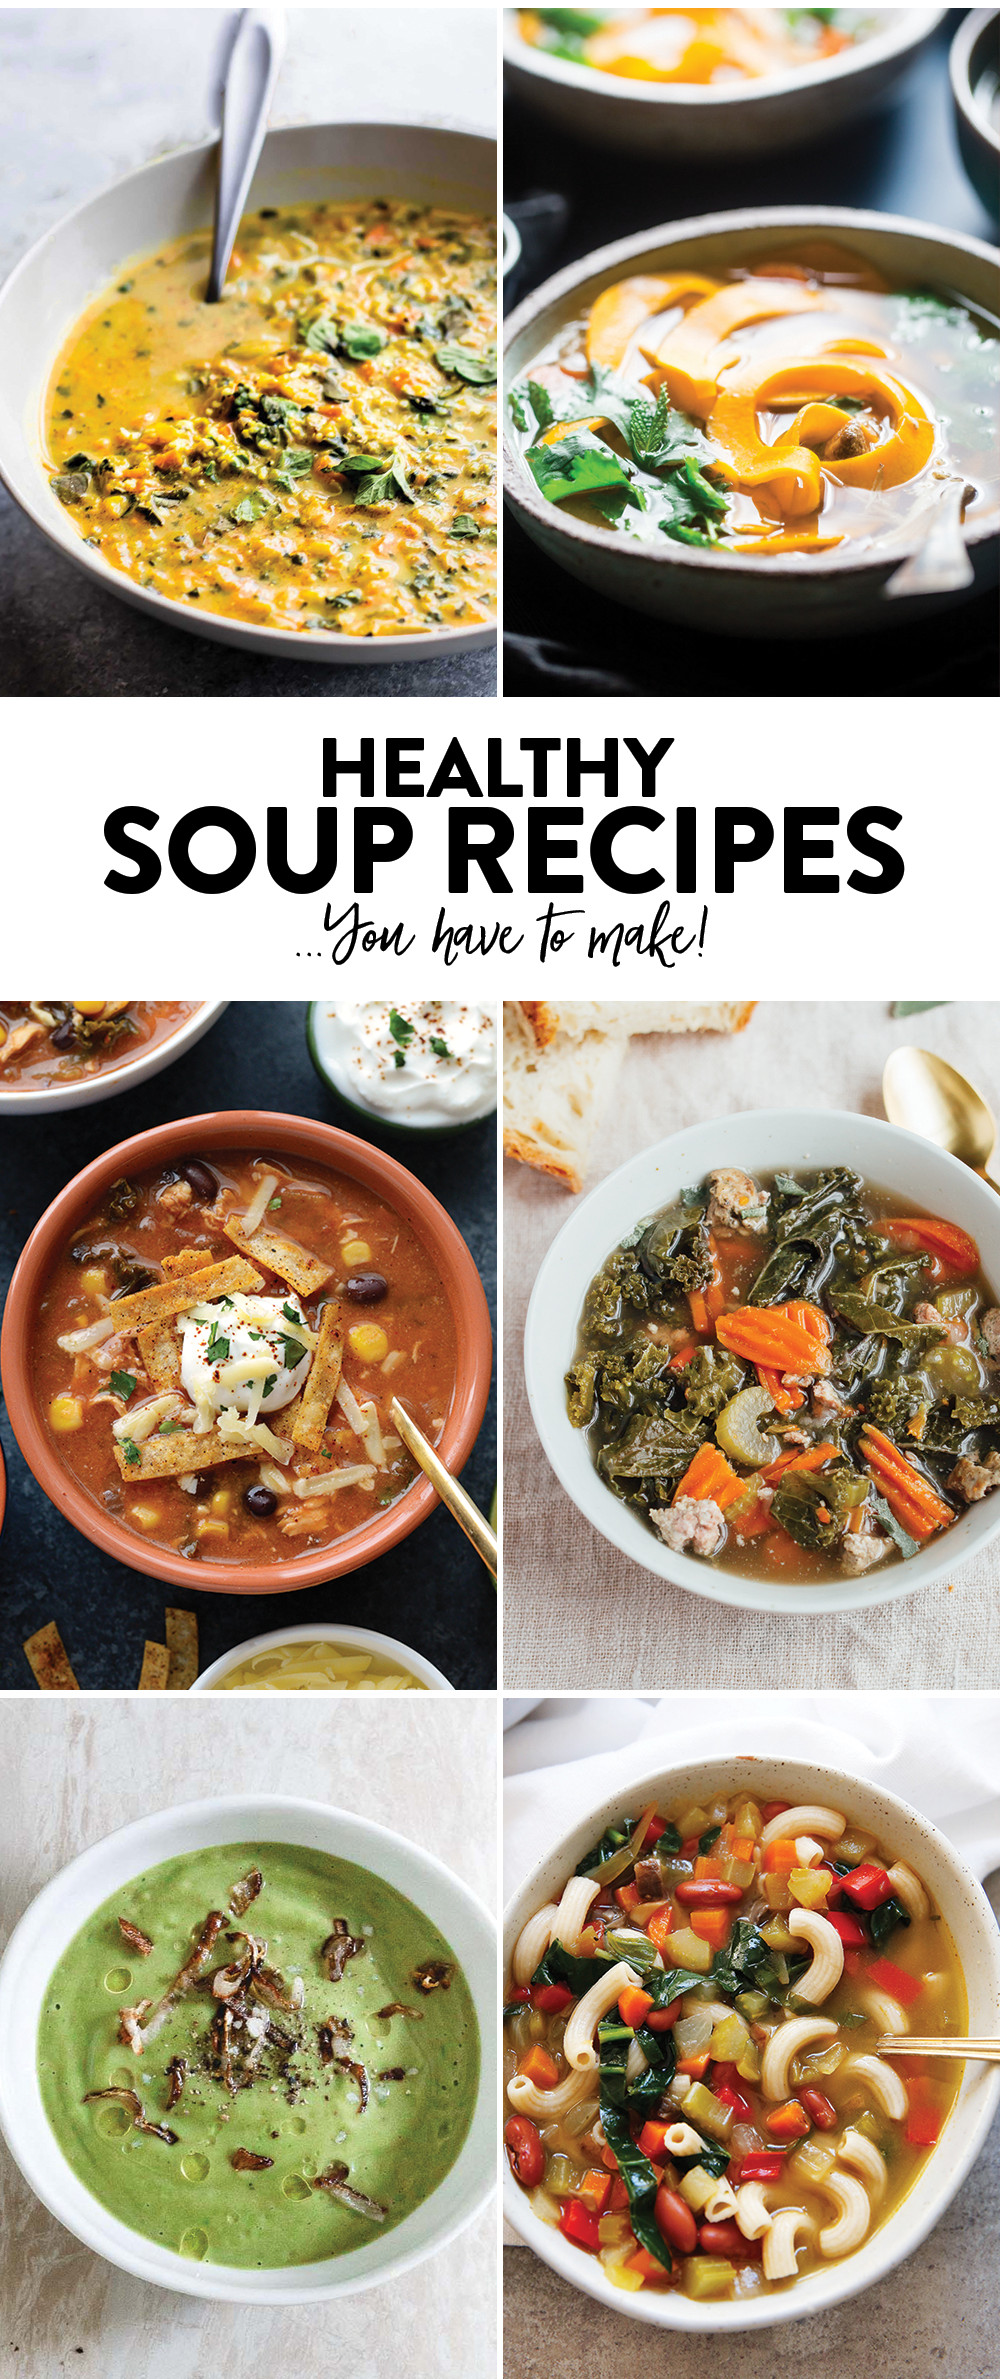 Are Soups Healthy  Curried Cauliflower Rice Kale Soup Paleo Vegan